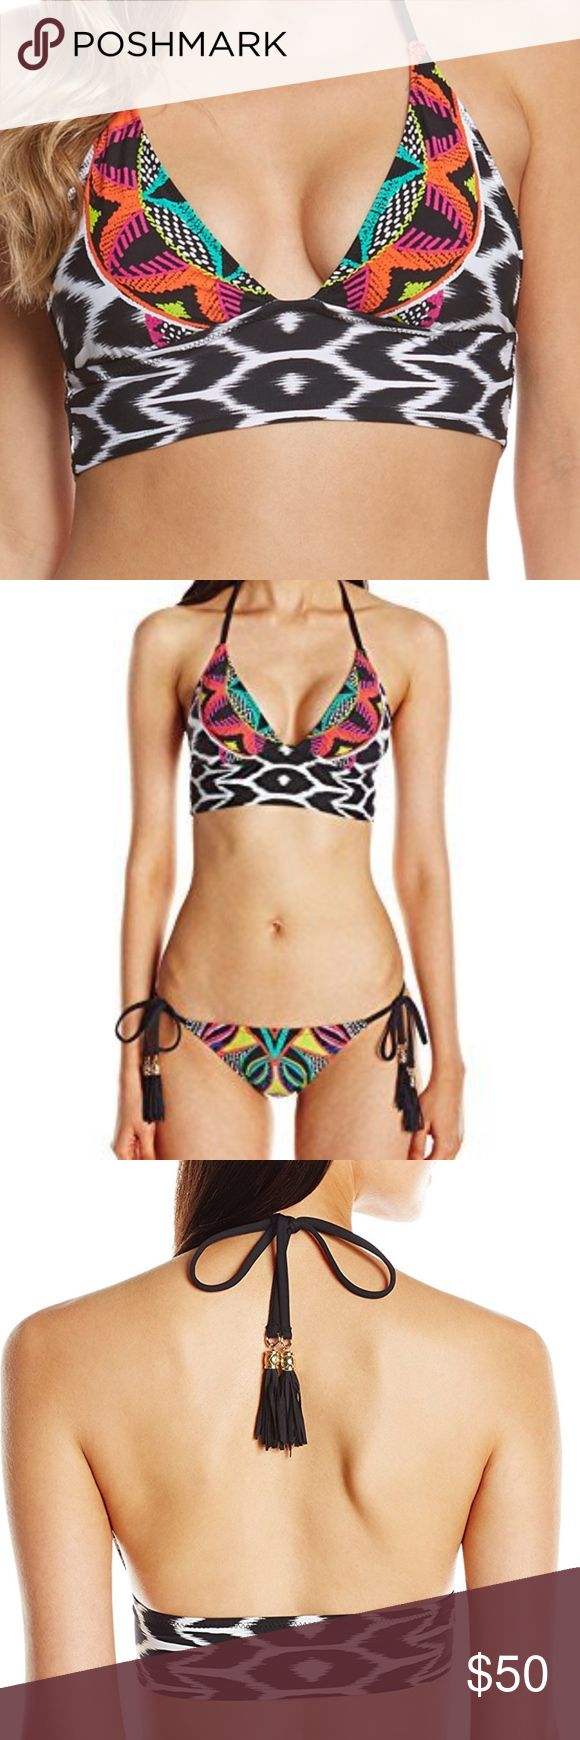 Trina Turk Africana Crop Triangle Bikini Swim Top This playful crop top from Trina Turk features a collage of color-packed beadwork print and black-and-white ikat patterns.  The long-line silhouette adds a dose of retro flavor to the mix. Trina Turk Swim Bikinis